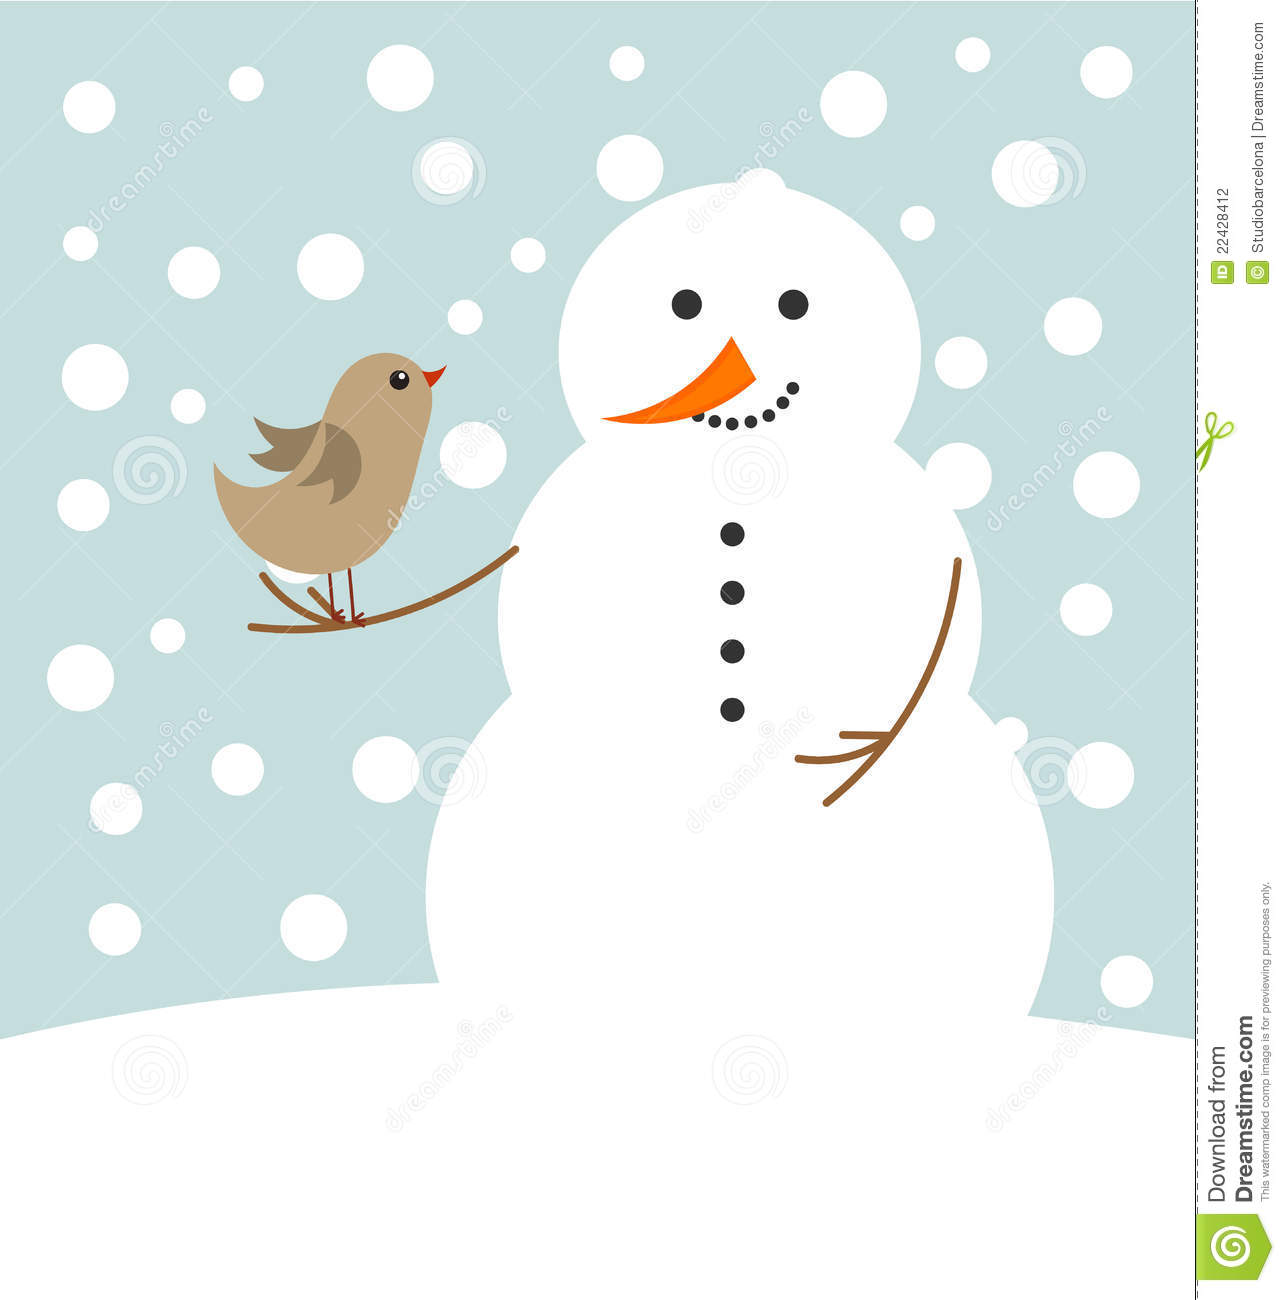 Stock Photography Christmas Snowman Bird Image22428412 on Christmas Tree5